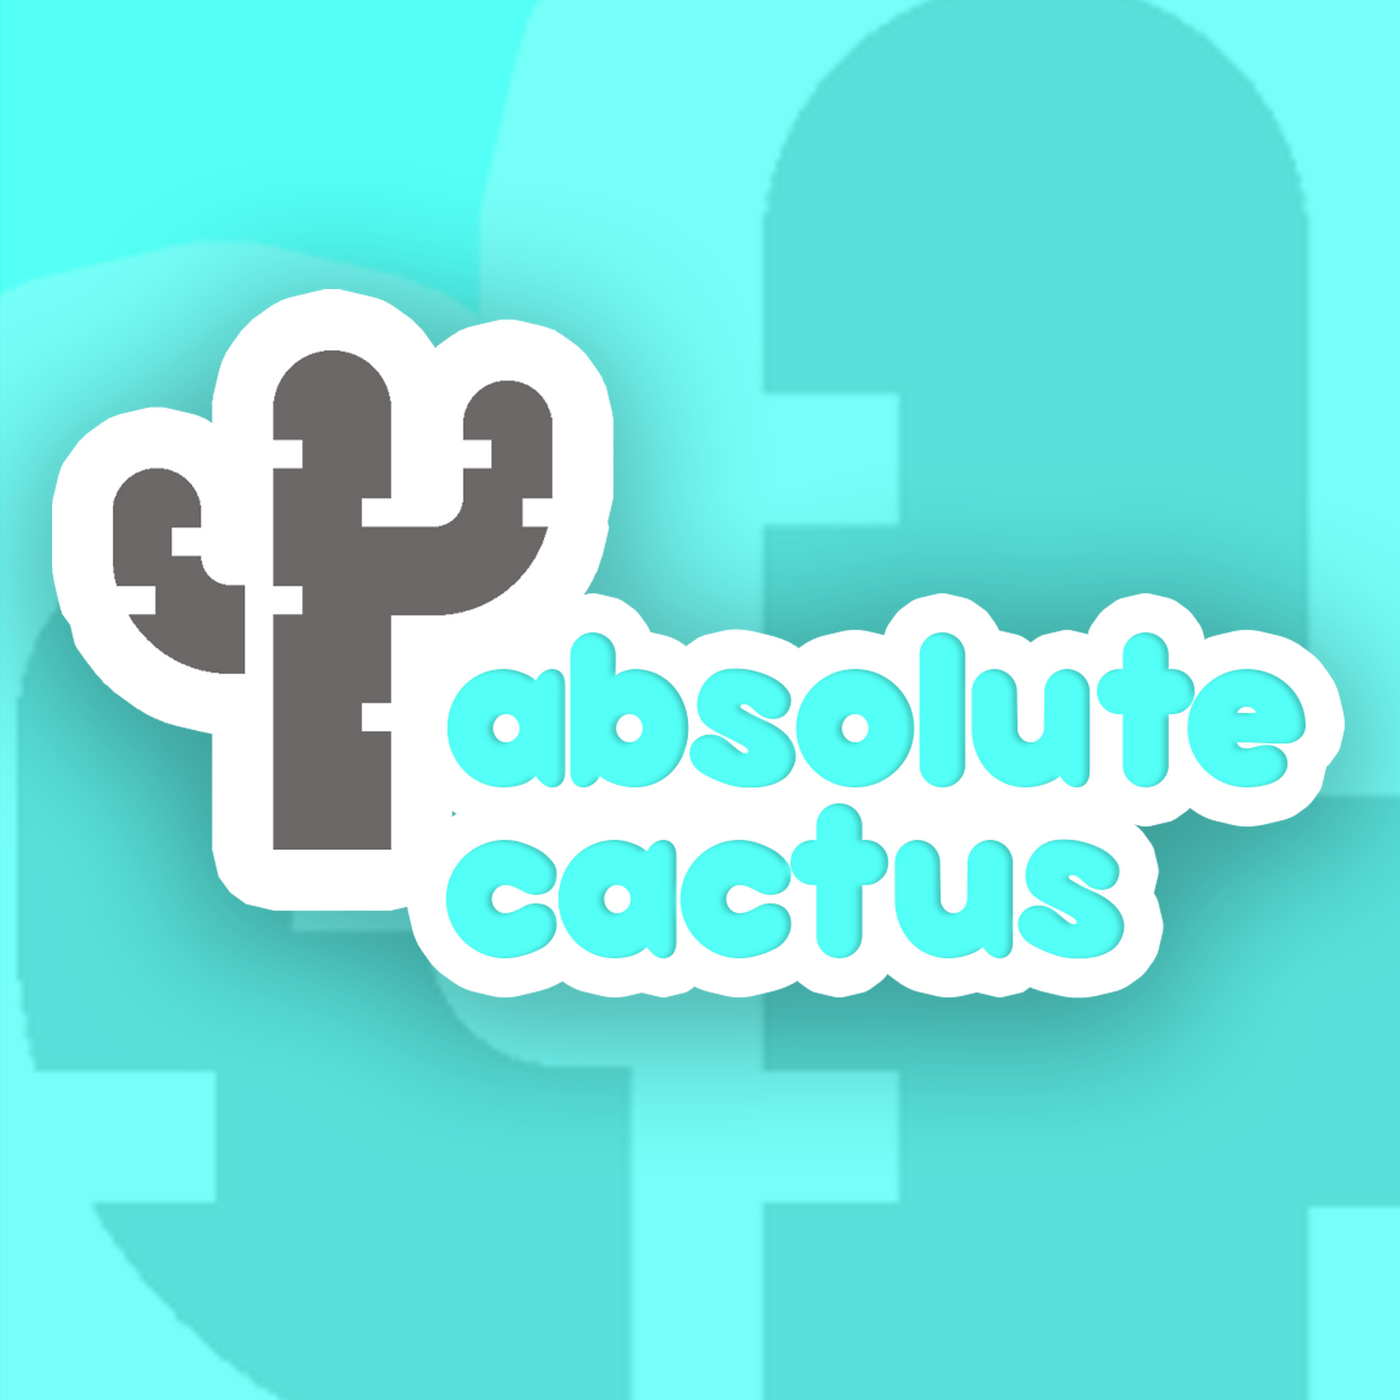 EPISODE 4: When thieves strike | Absolute Cactus Podcast